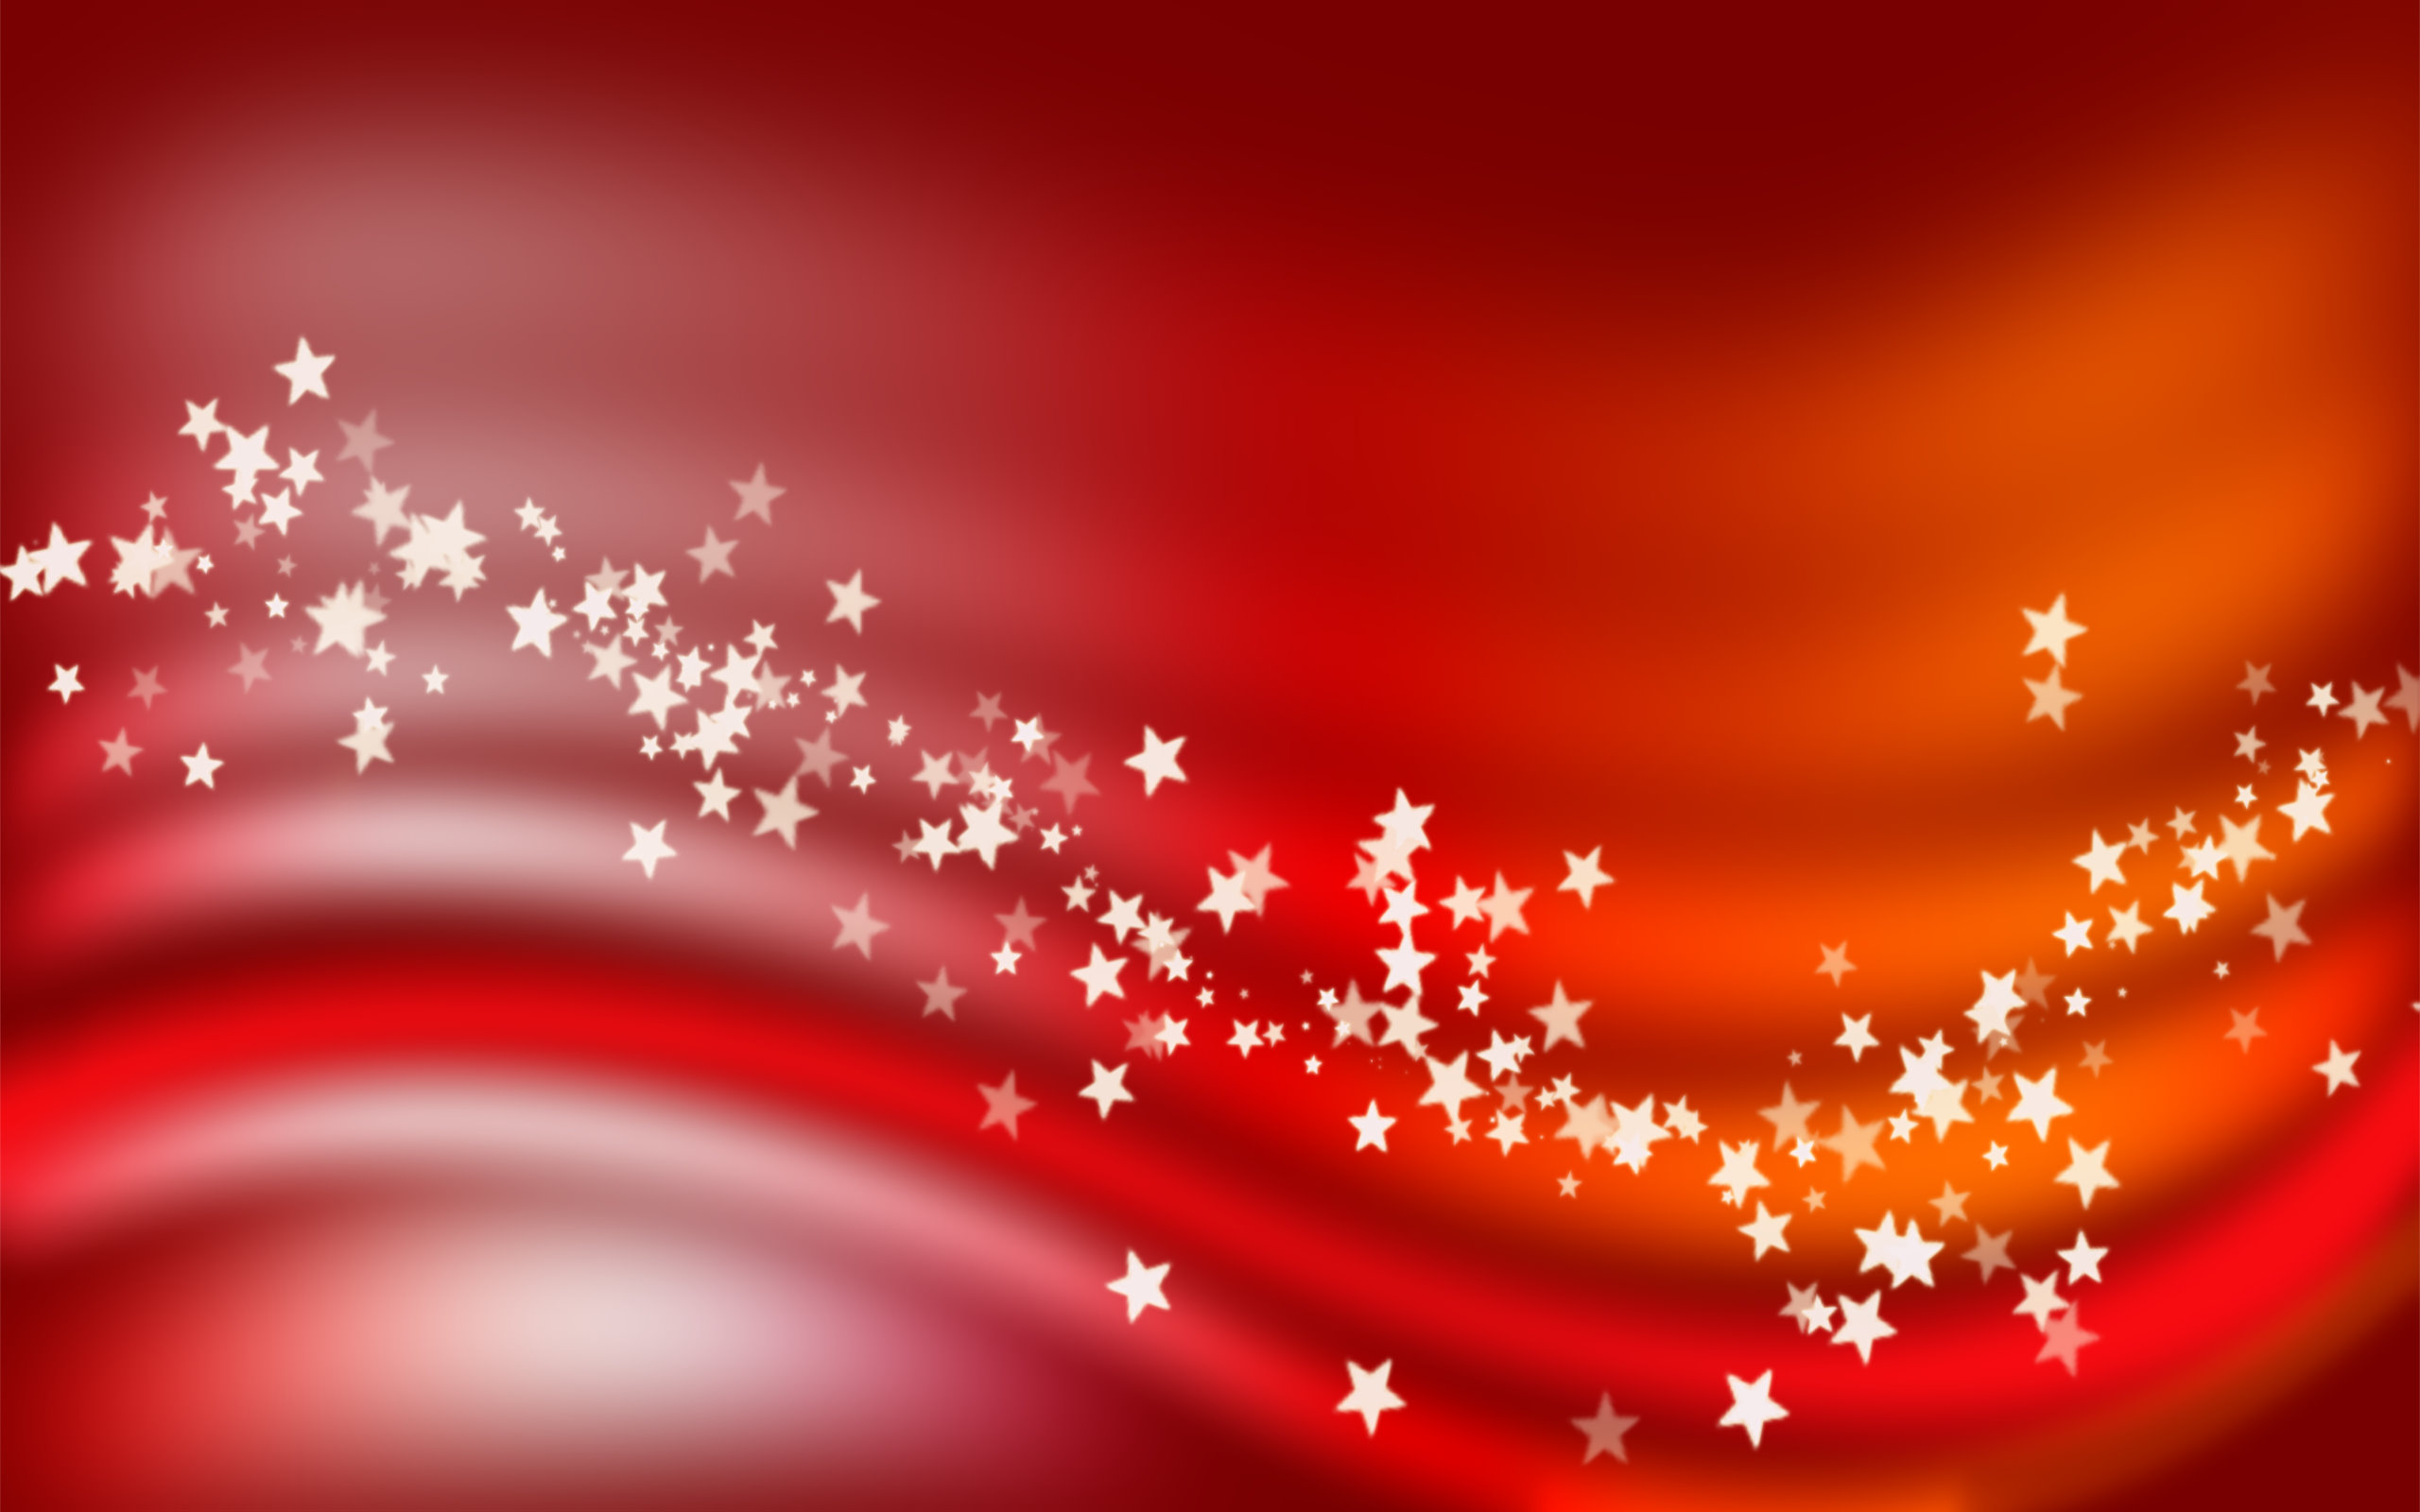 Red Xmas Wallpapers HD Wallpaper Christmas Wallpapers 2560x1600